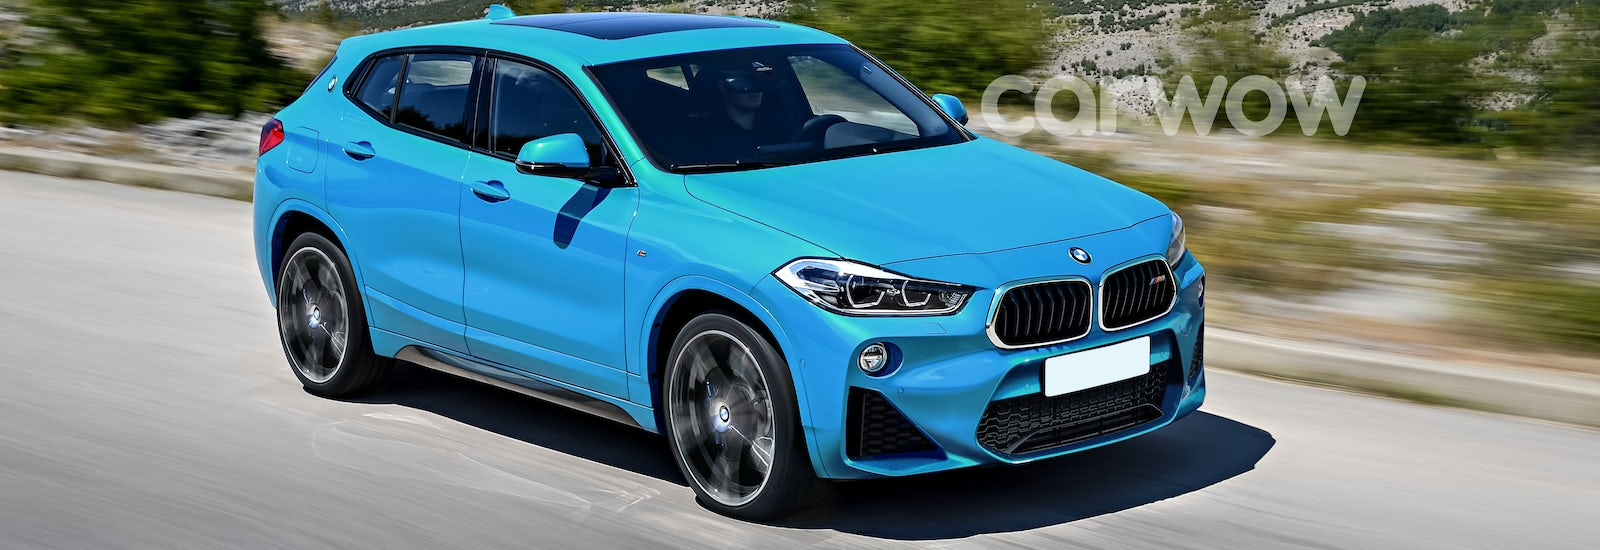 2019 bmw x2 m price specs release date carwow. Black Bedroom Furniture Sets. Home Design Ideas